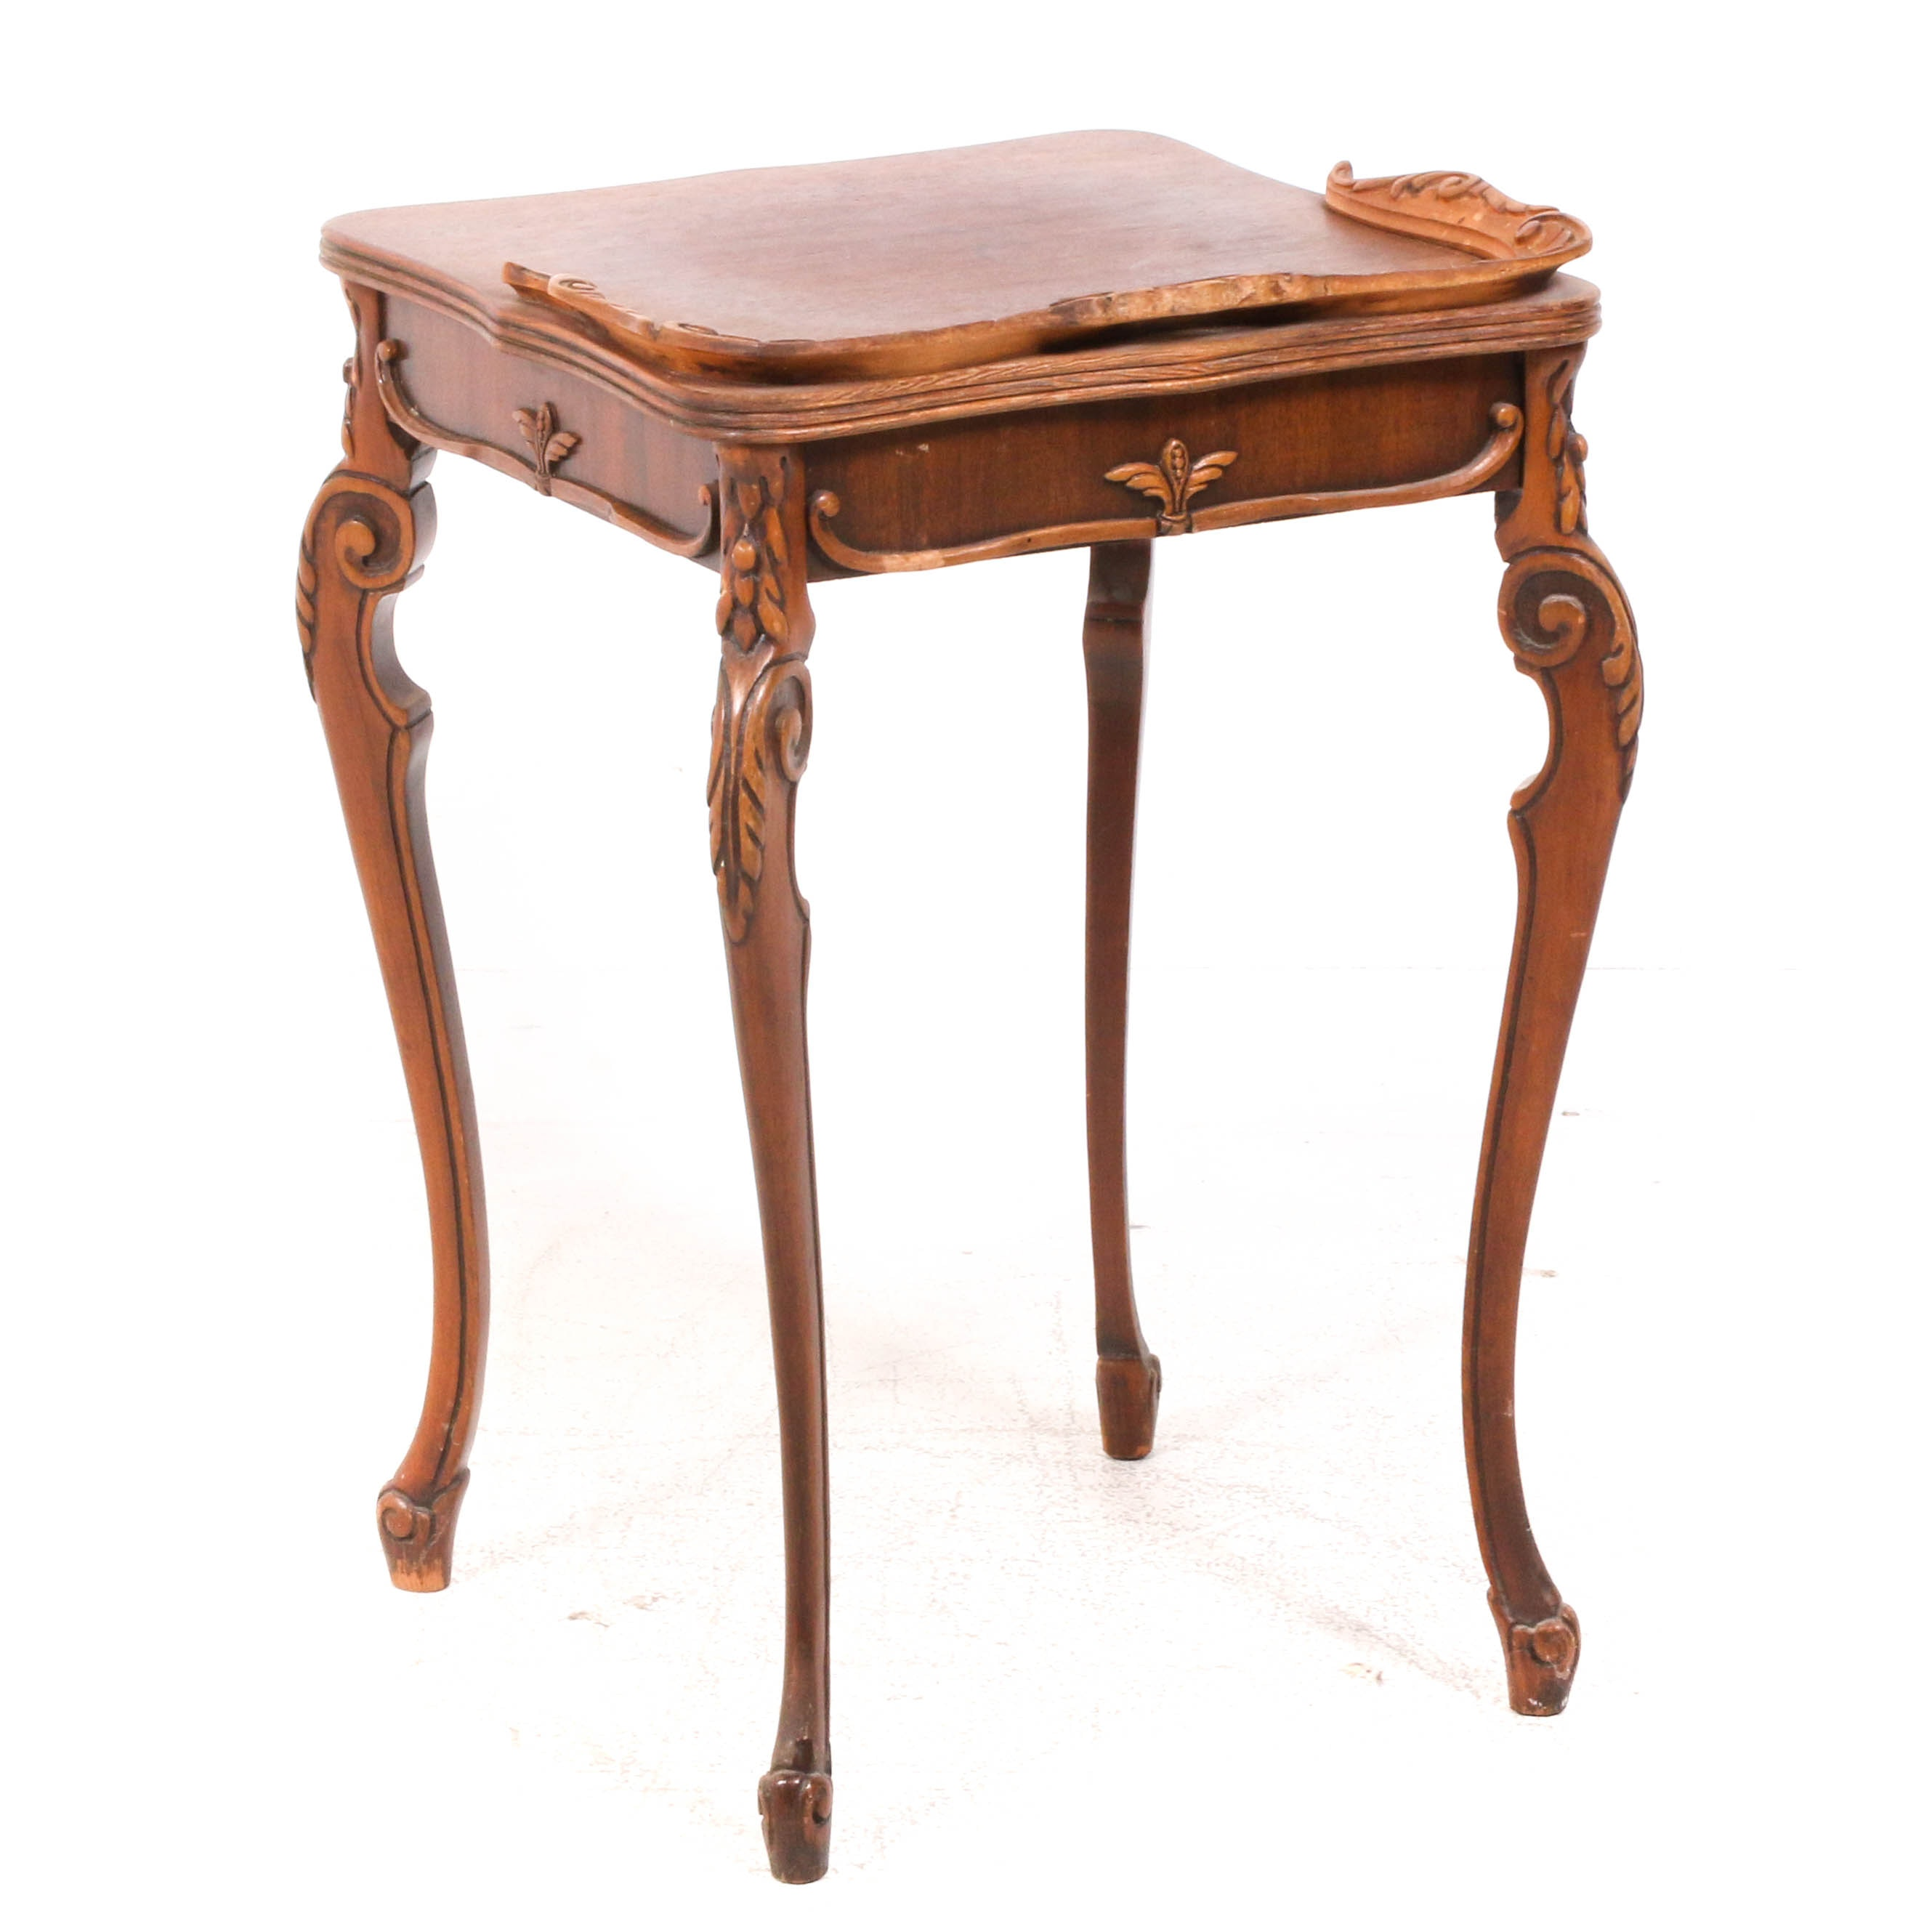 French Provincial Style Side Table, Antique